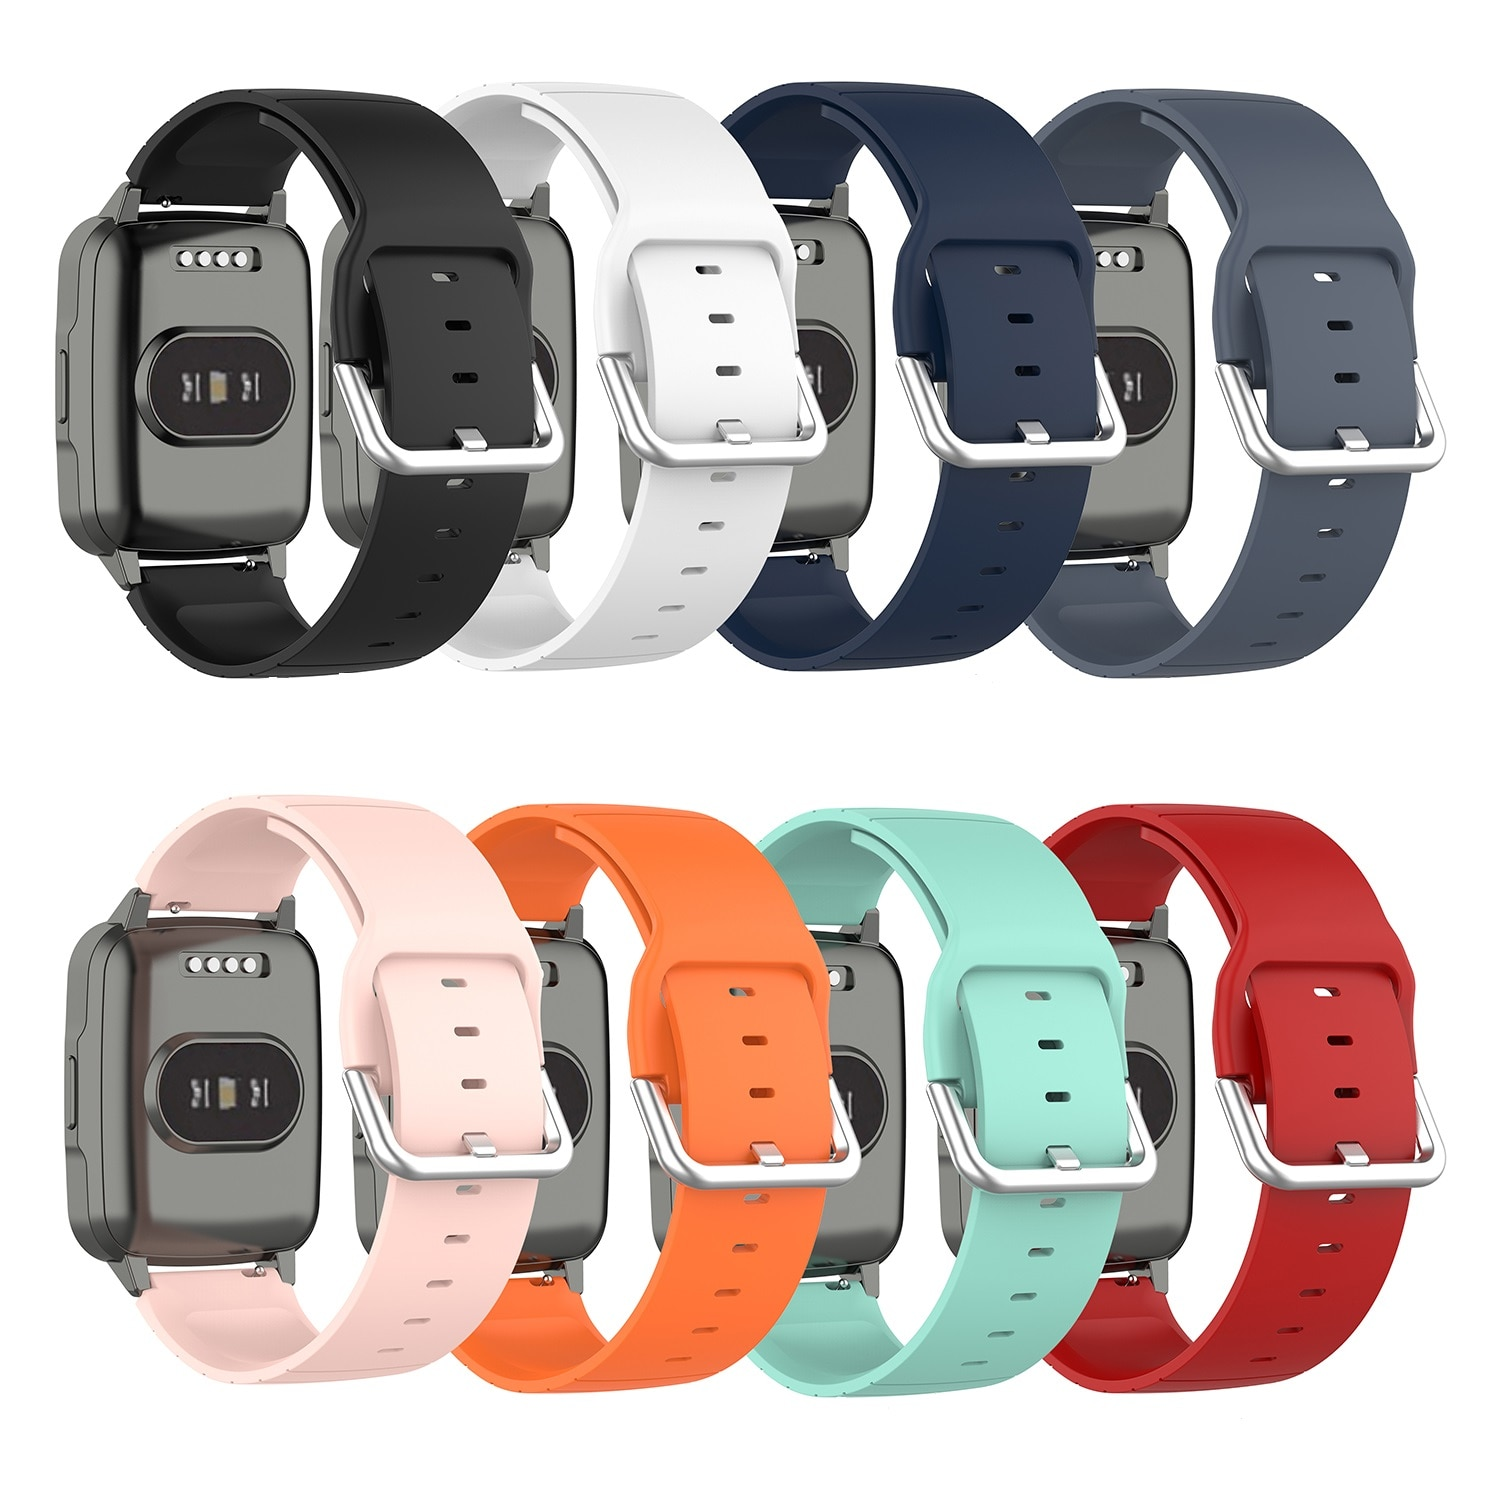 19mm Silicone Strap Watch Band for Xiaomi haylou Solar LS01 ID205 Willful IP68 Smart Watch Wristwatch Replacement Bands